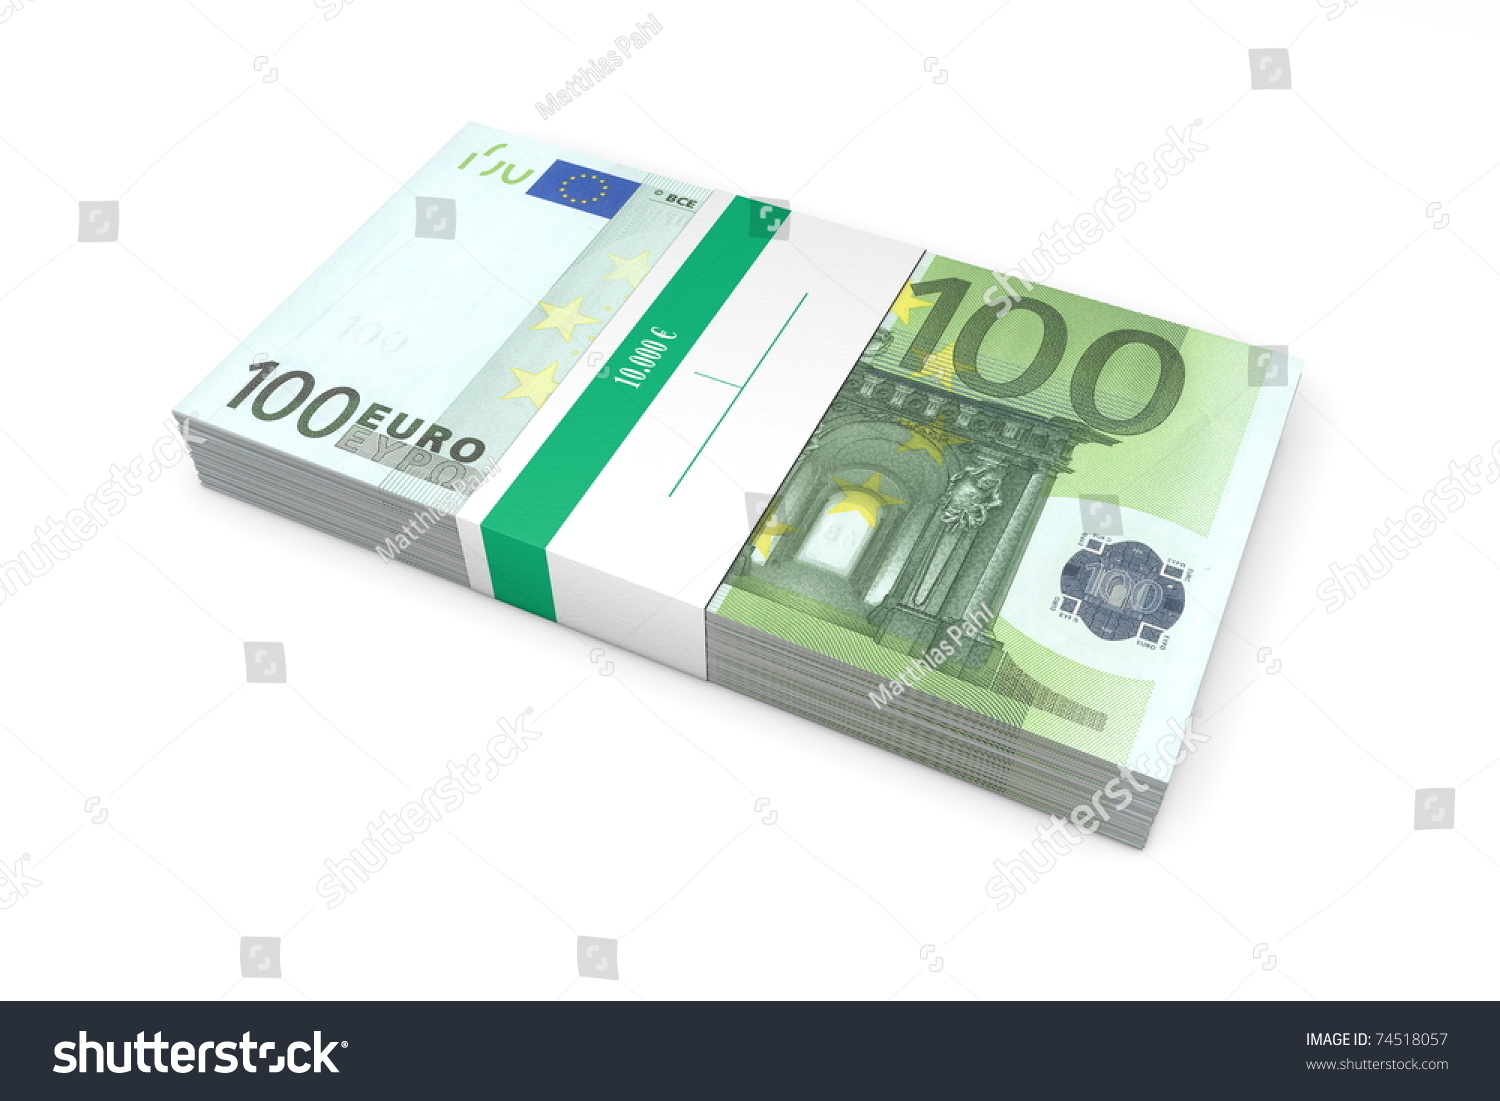 single packet of 100 euro notes with bank wrapper euros stock photo 74518057 shutterstock. Black Bedroom Furniture Sets. Home Design Ideas